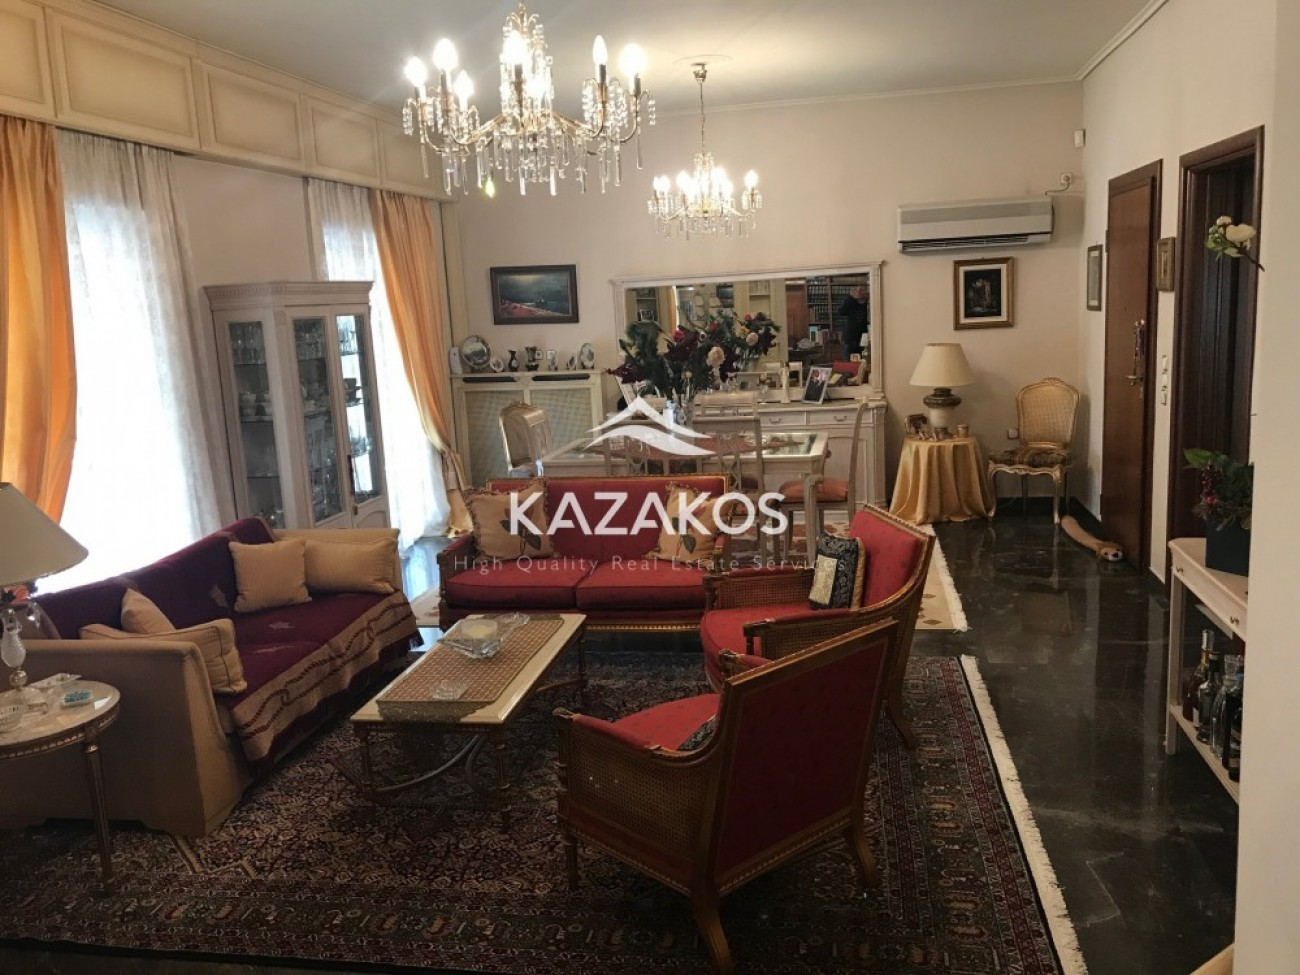 Apartment for Sale in Petroupoli, Central & West Region of Athens, Greece